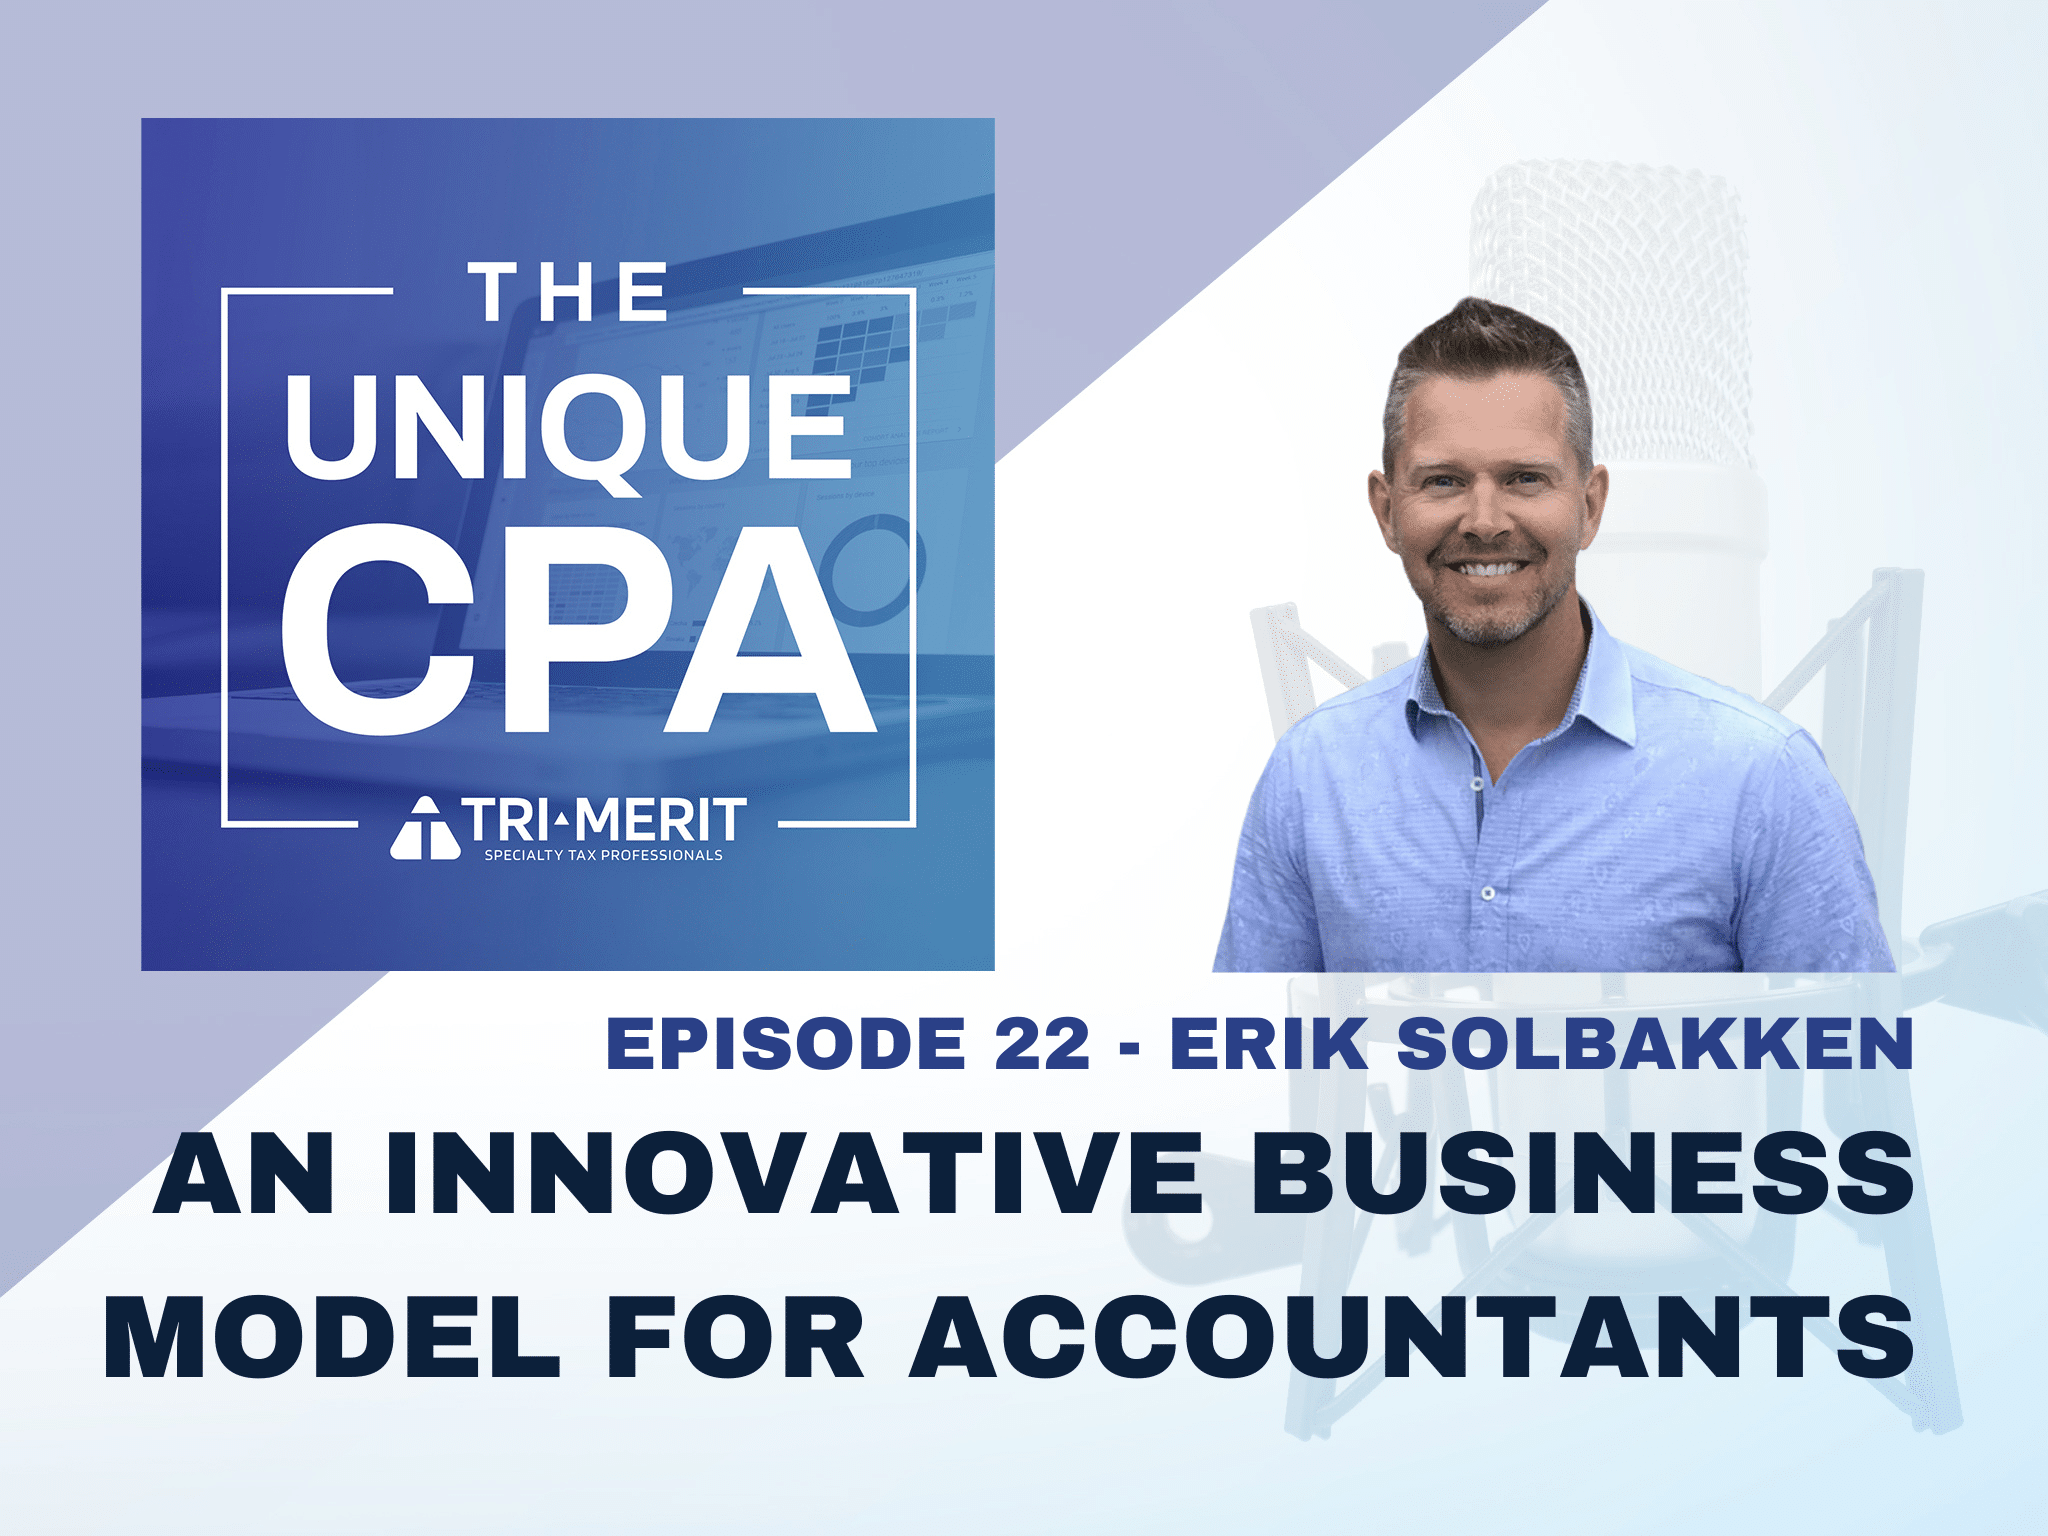 The Unique CPA Feature Image Ep 22 Erik Solbakken - An Innovative Business Model for Accountants - Tri-Merit